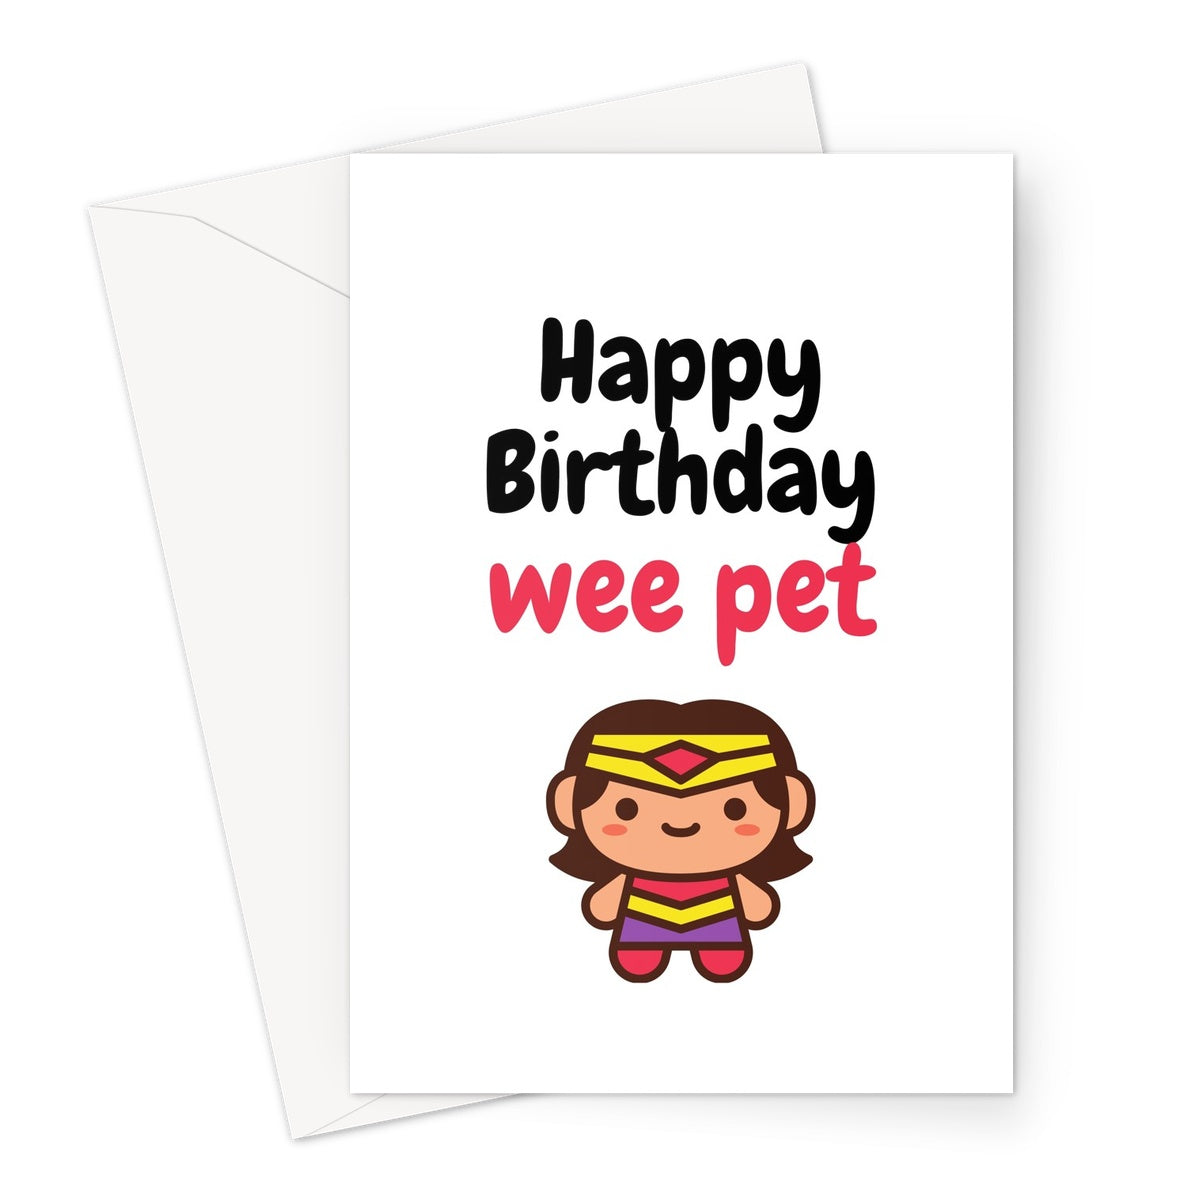 stray funk design happy birthday wee pet greeting card